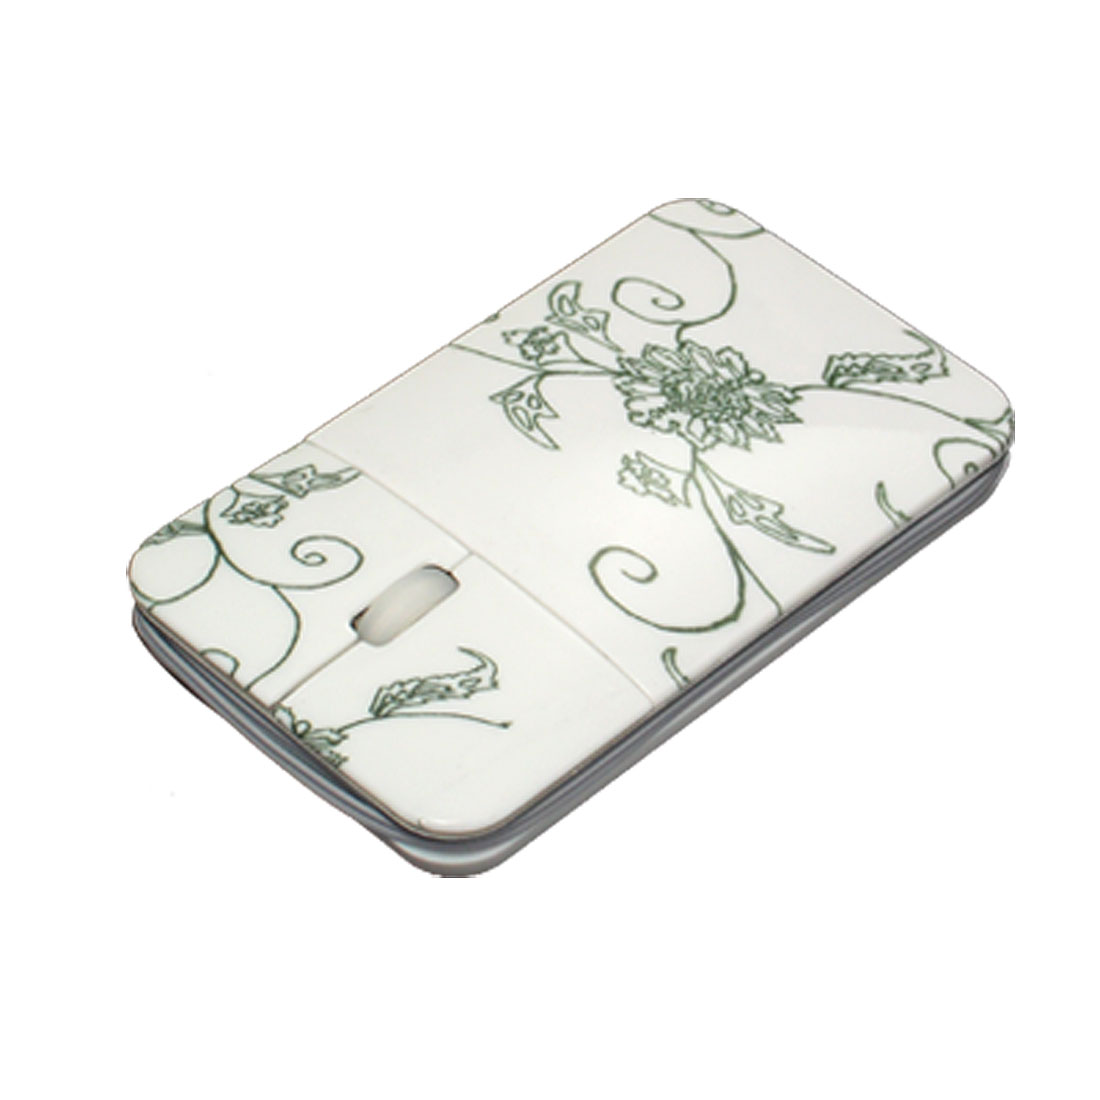 Flower Laptop PC Computer 3D USB Slim Optical Mouse with Cord Wrap